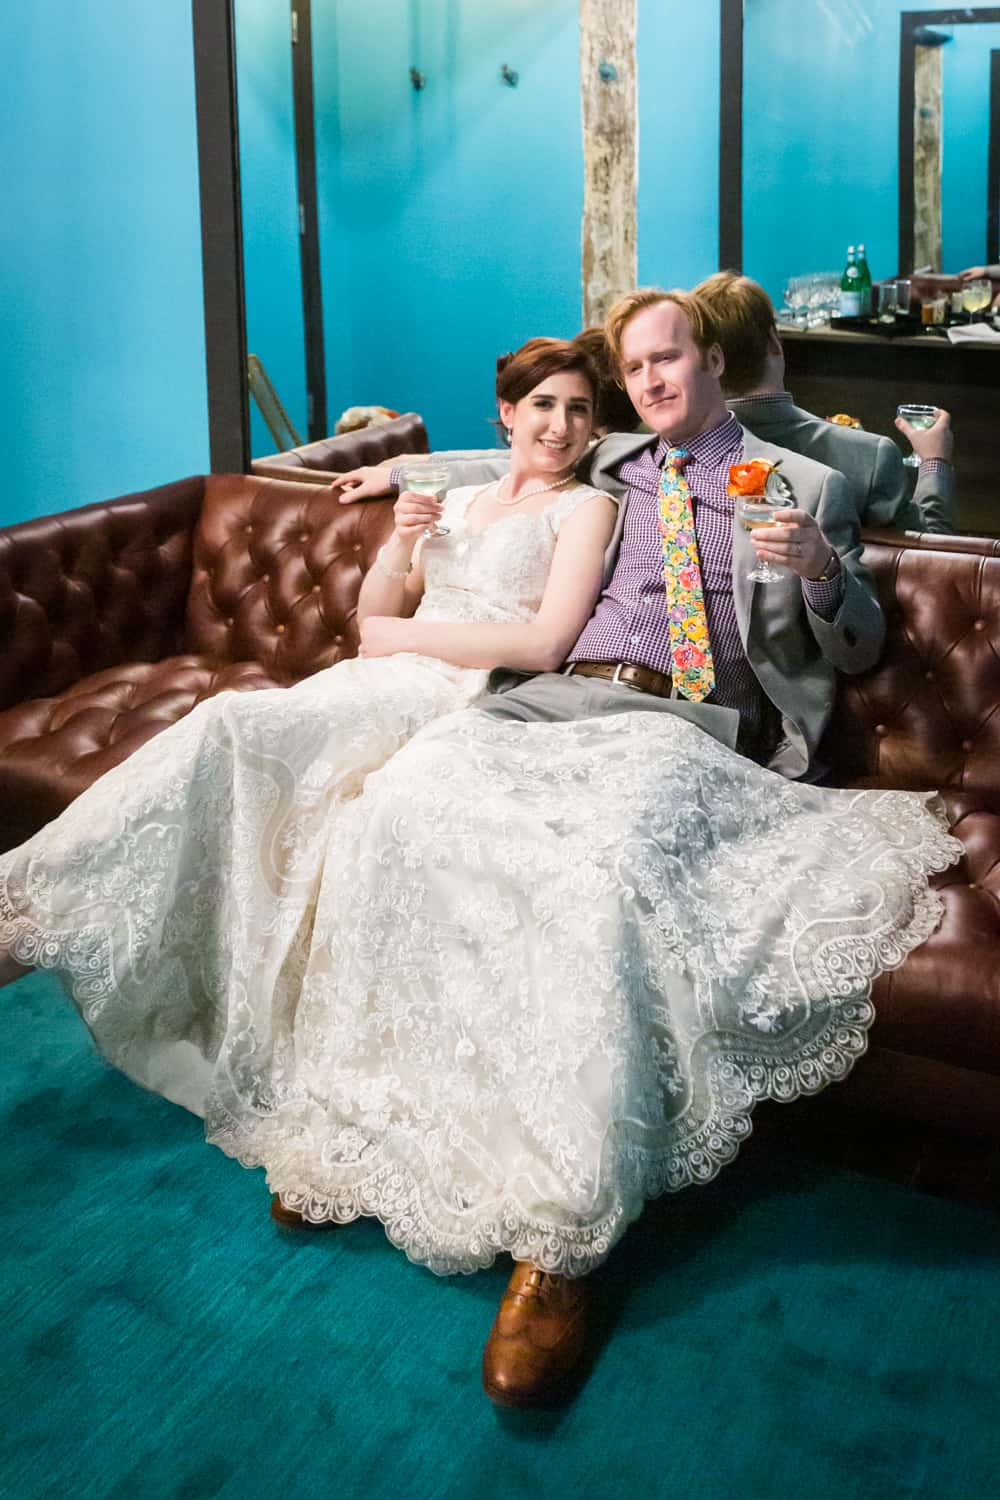 Bride and groom holding cocktails and lounging on couch at a Greenpoint Loft wedding